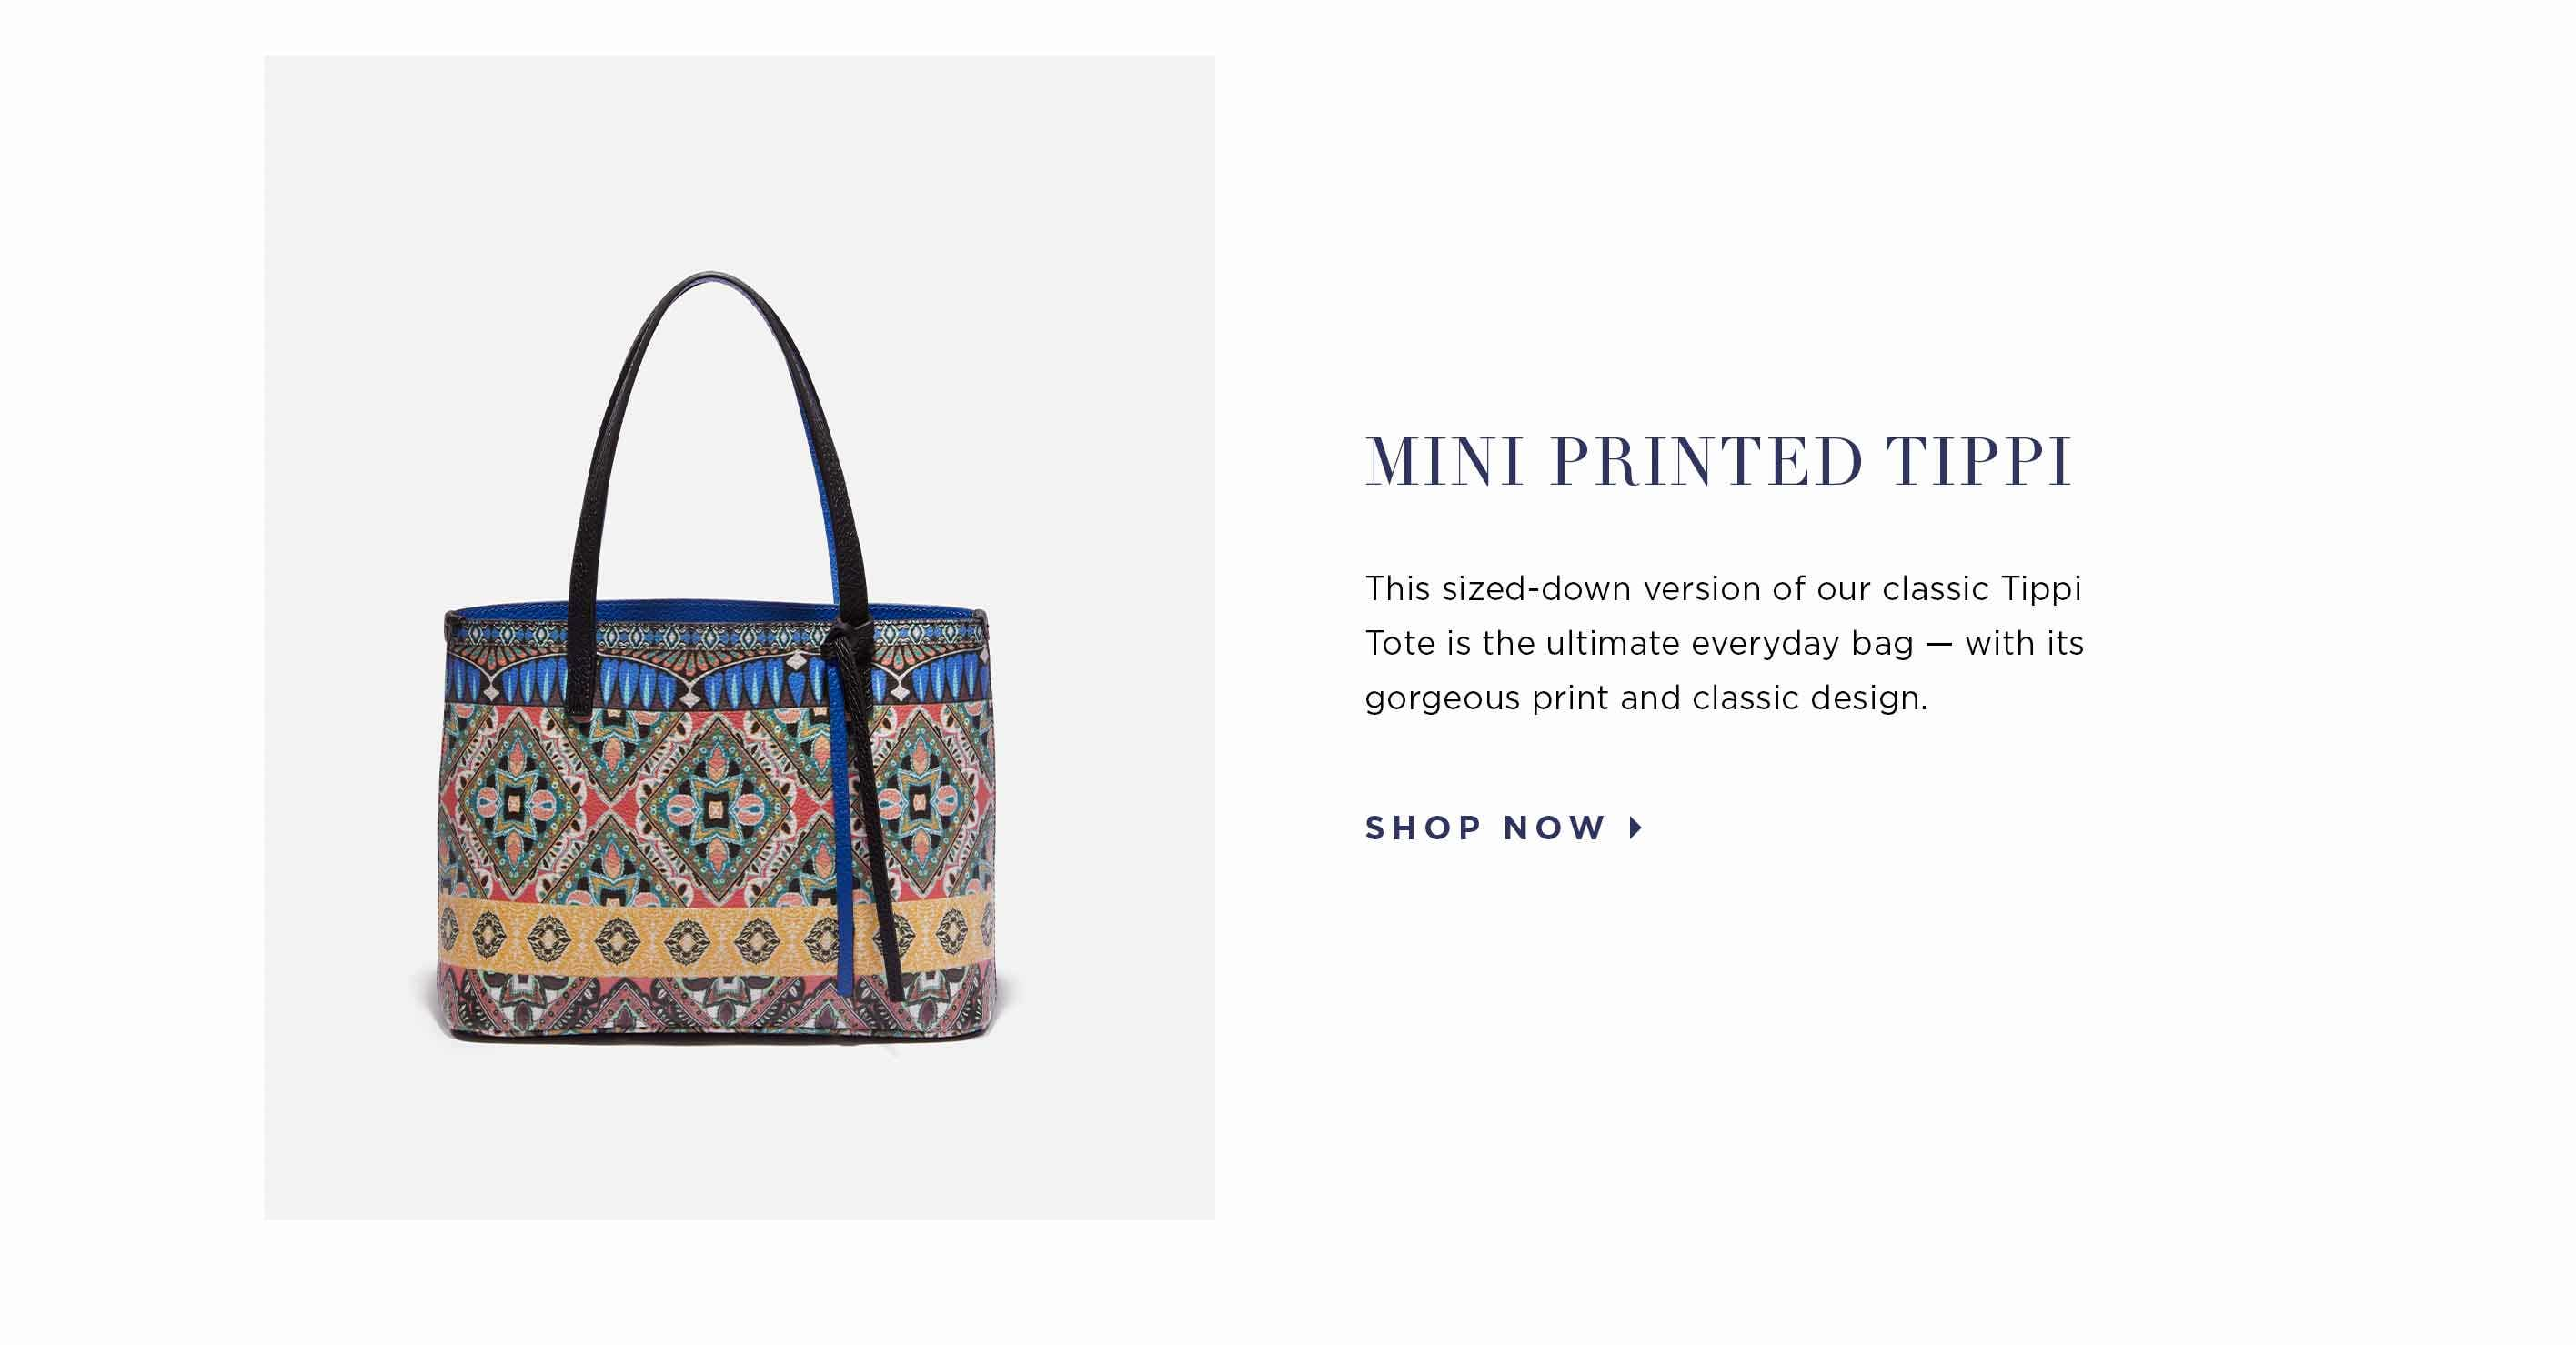 Mini Printed Tippi - This sized-down version of our classic Tippi Tote is the ultimate everyday bag — with its gorgeous print and classic design. Shop now.